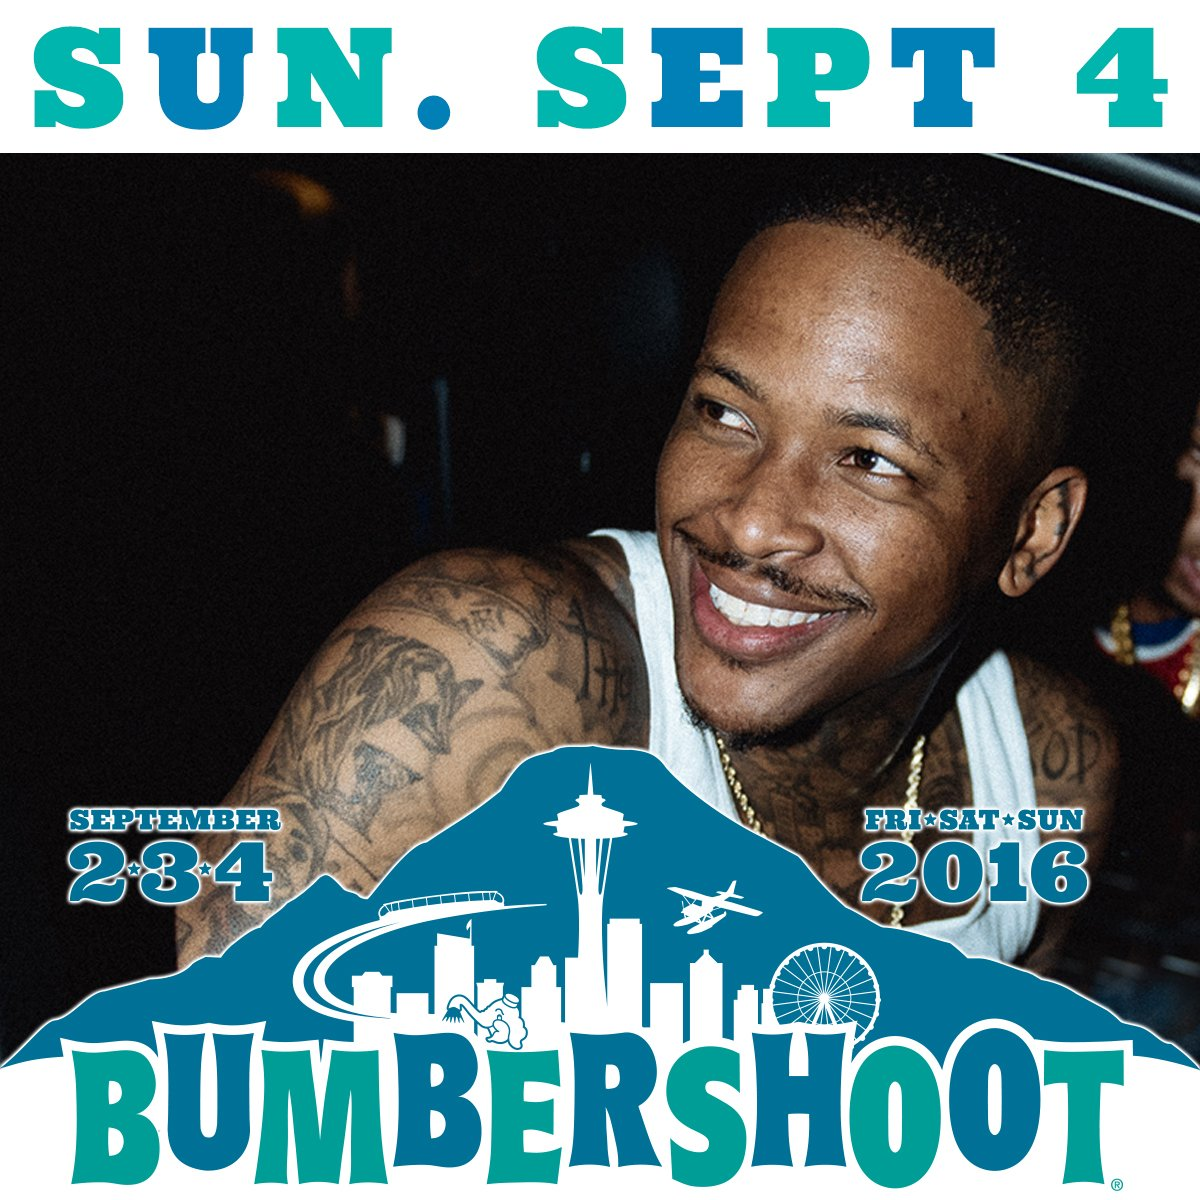 we are excited to announce @YG has been added to the #Bumbershoot2016 lineup! https://t.co/8ugcSijzCb